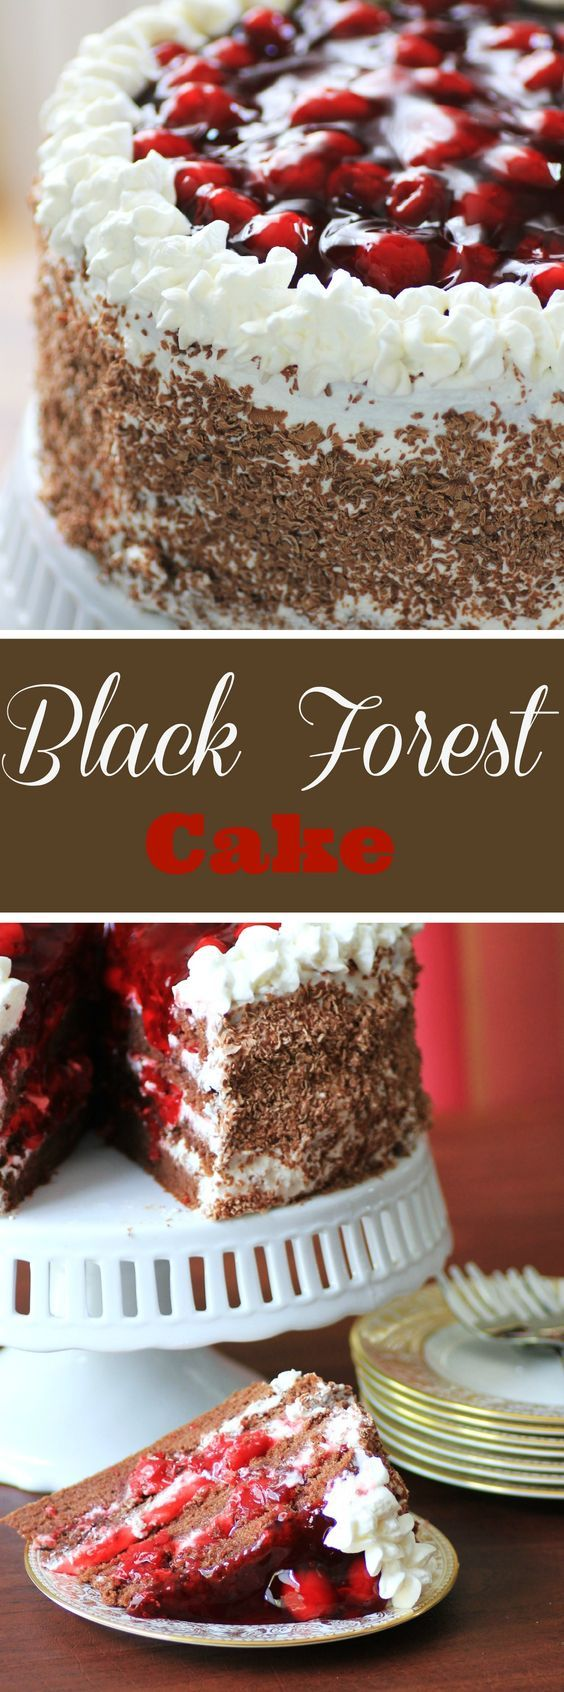 Black Forest Cake by Noshing With The Nolands - A light cake, first drizzled with a Kirsch-laden syrup, then layered with whipped cream and dripping with luscious cherries. Perfect celebration cake for the holidays, Christmas or New Year's Eve!!: